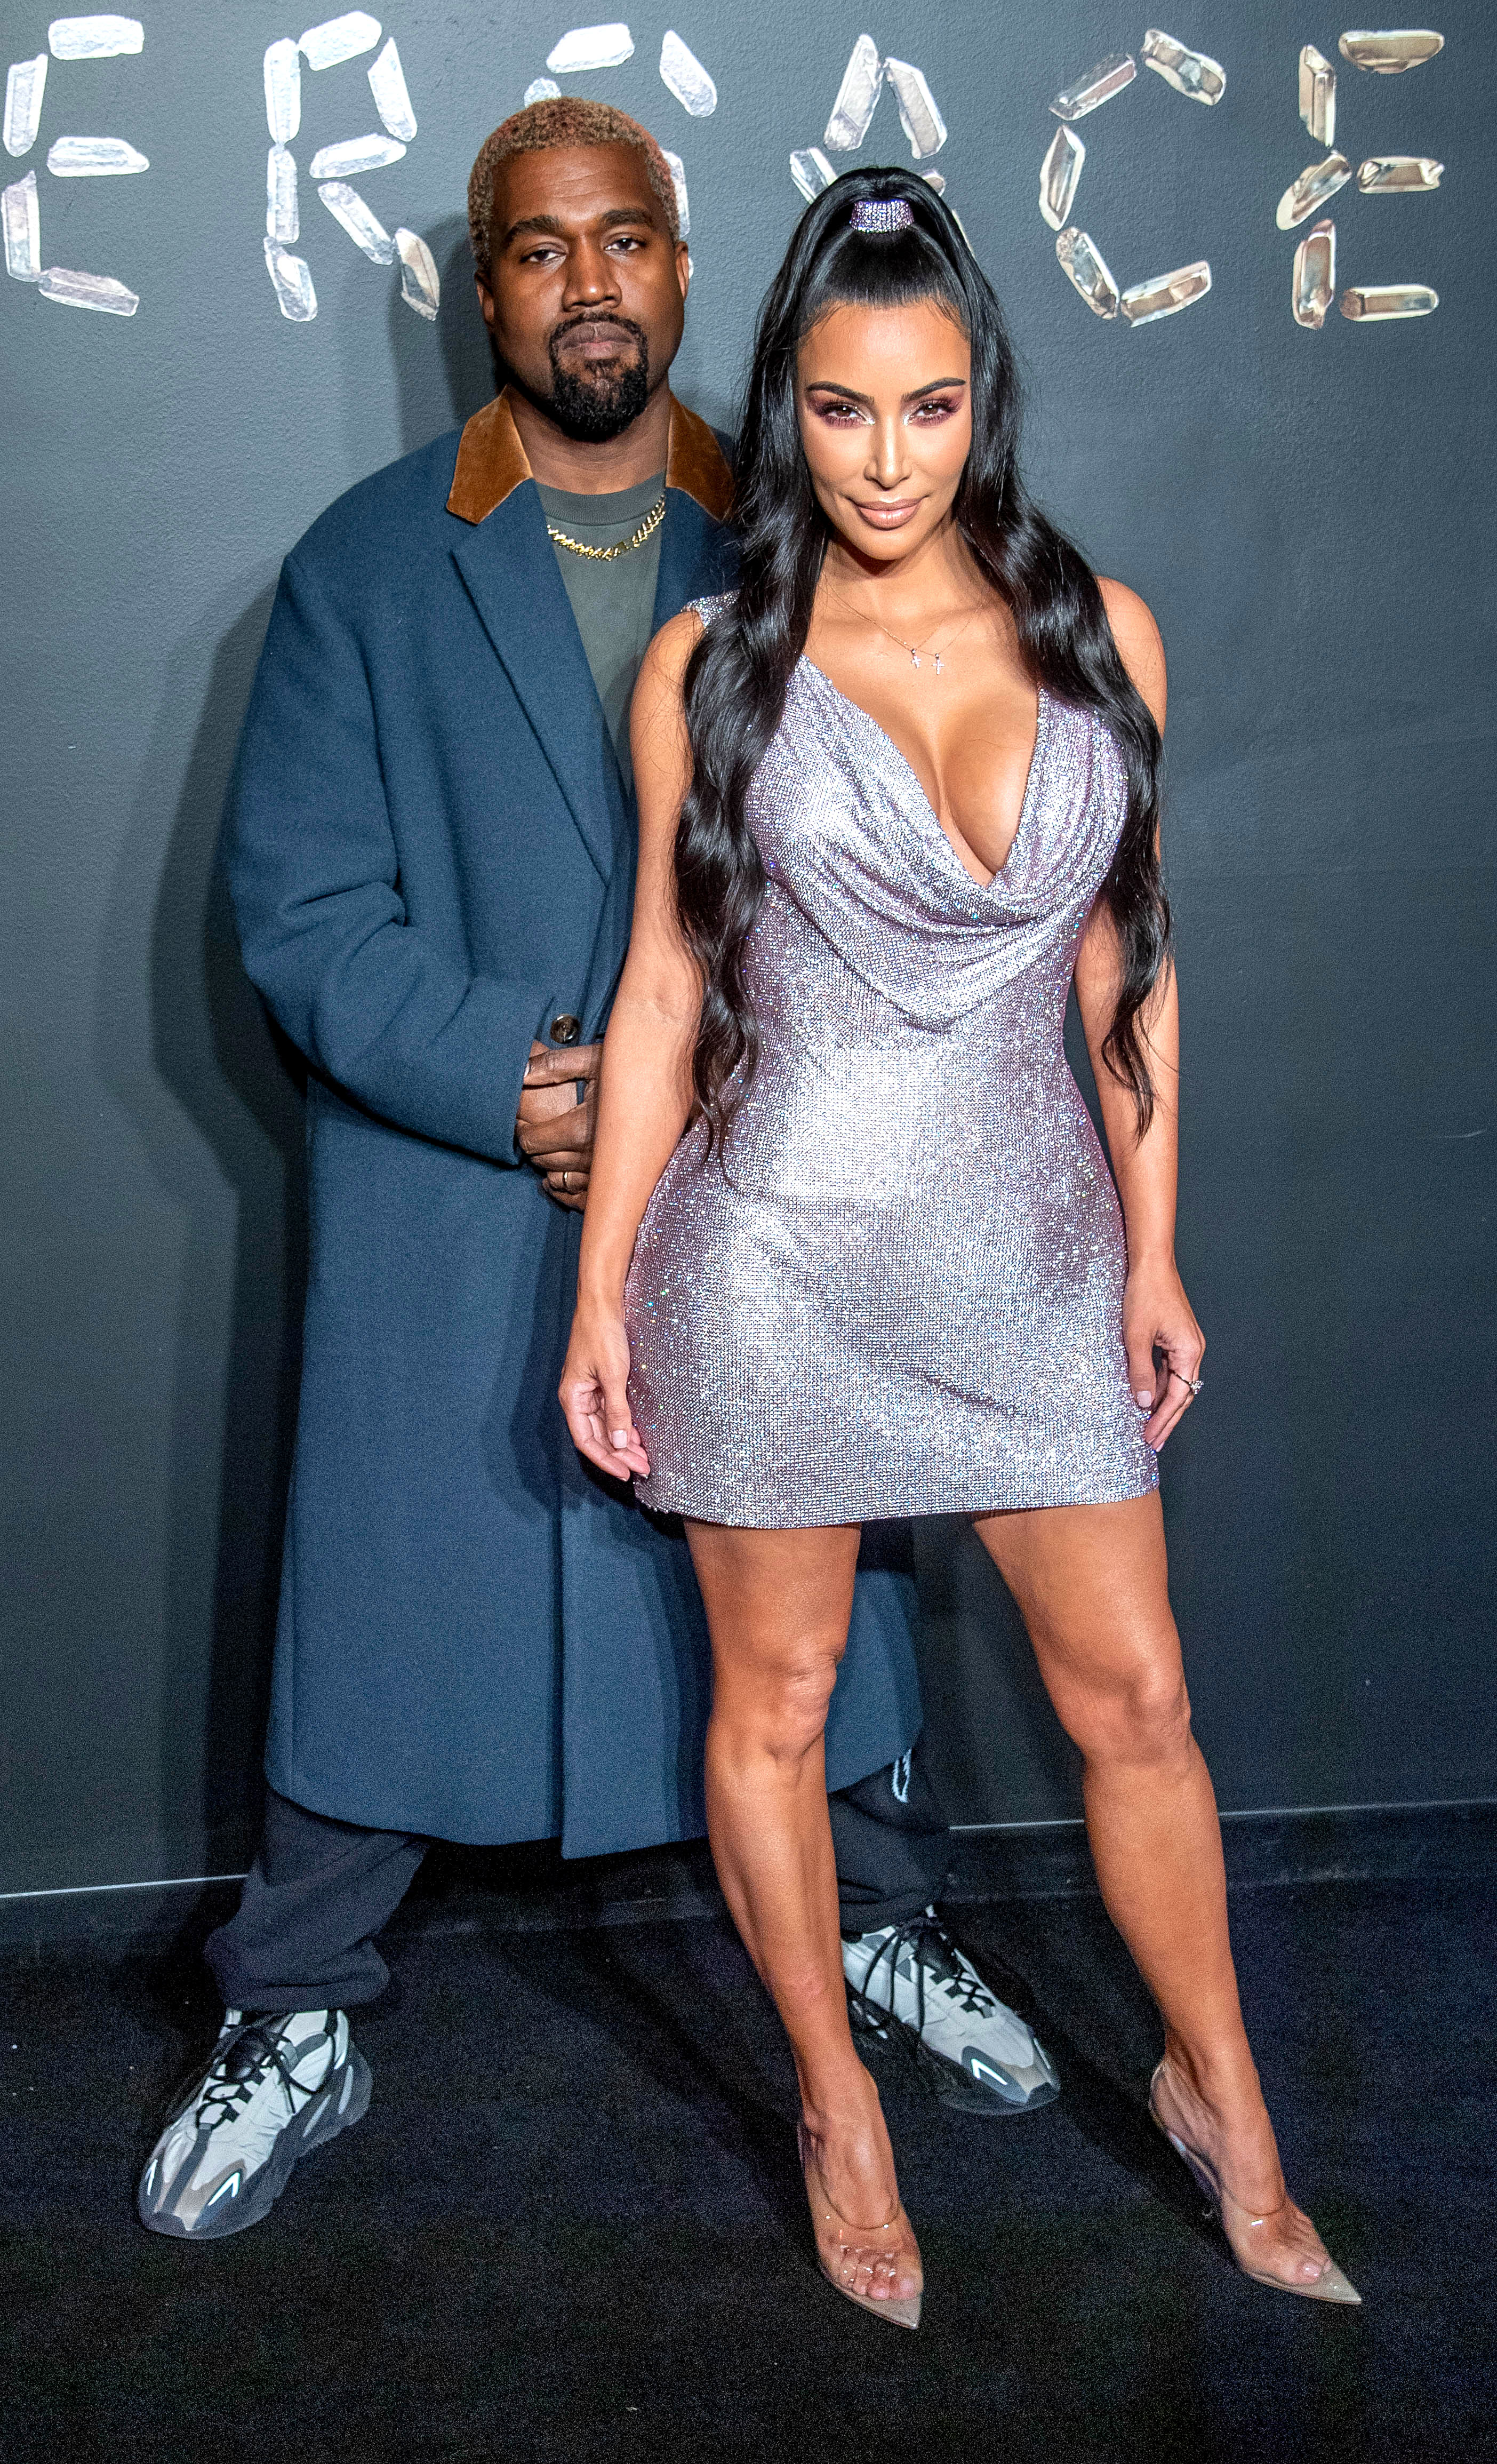 Kim Kardashian and Kanye West Welcome Their Fourth Child Via Surrogate - Kanye West and Kim Kardashian West attend the the Versace fall 2019 fashion show at the American Stock Exchange Building in lower Manhattan on December 02, 2018 in New York City.